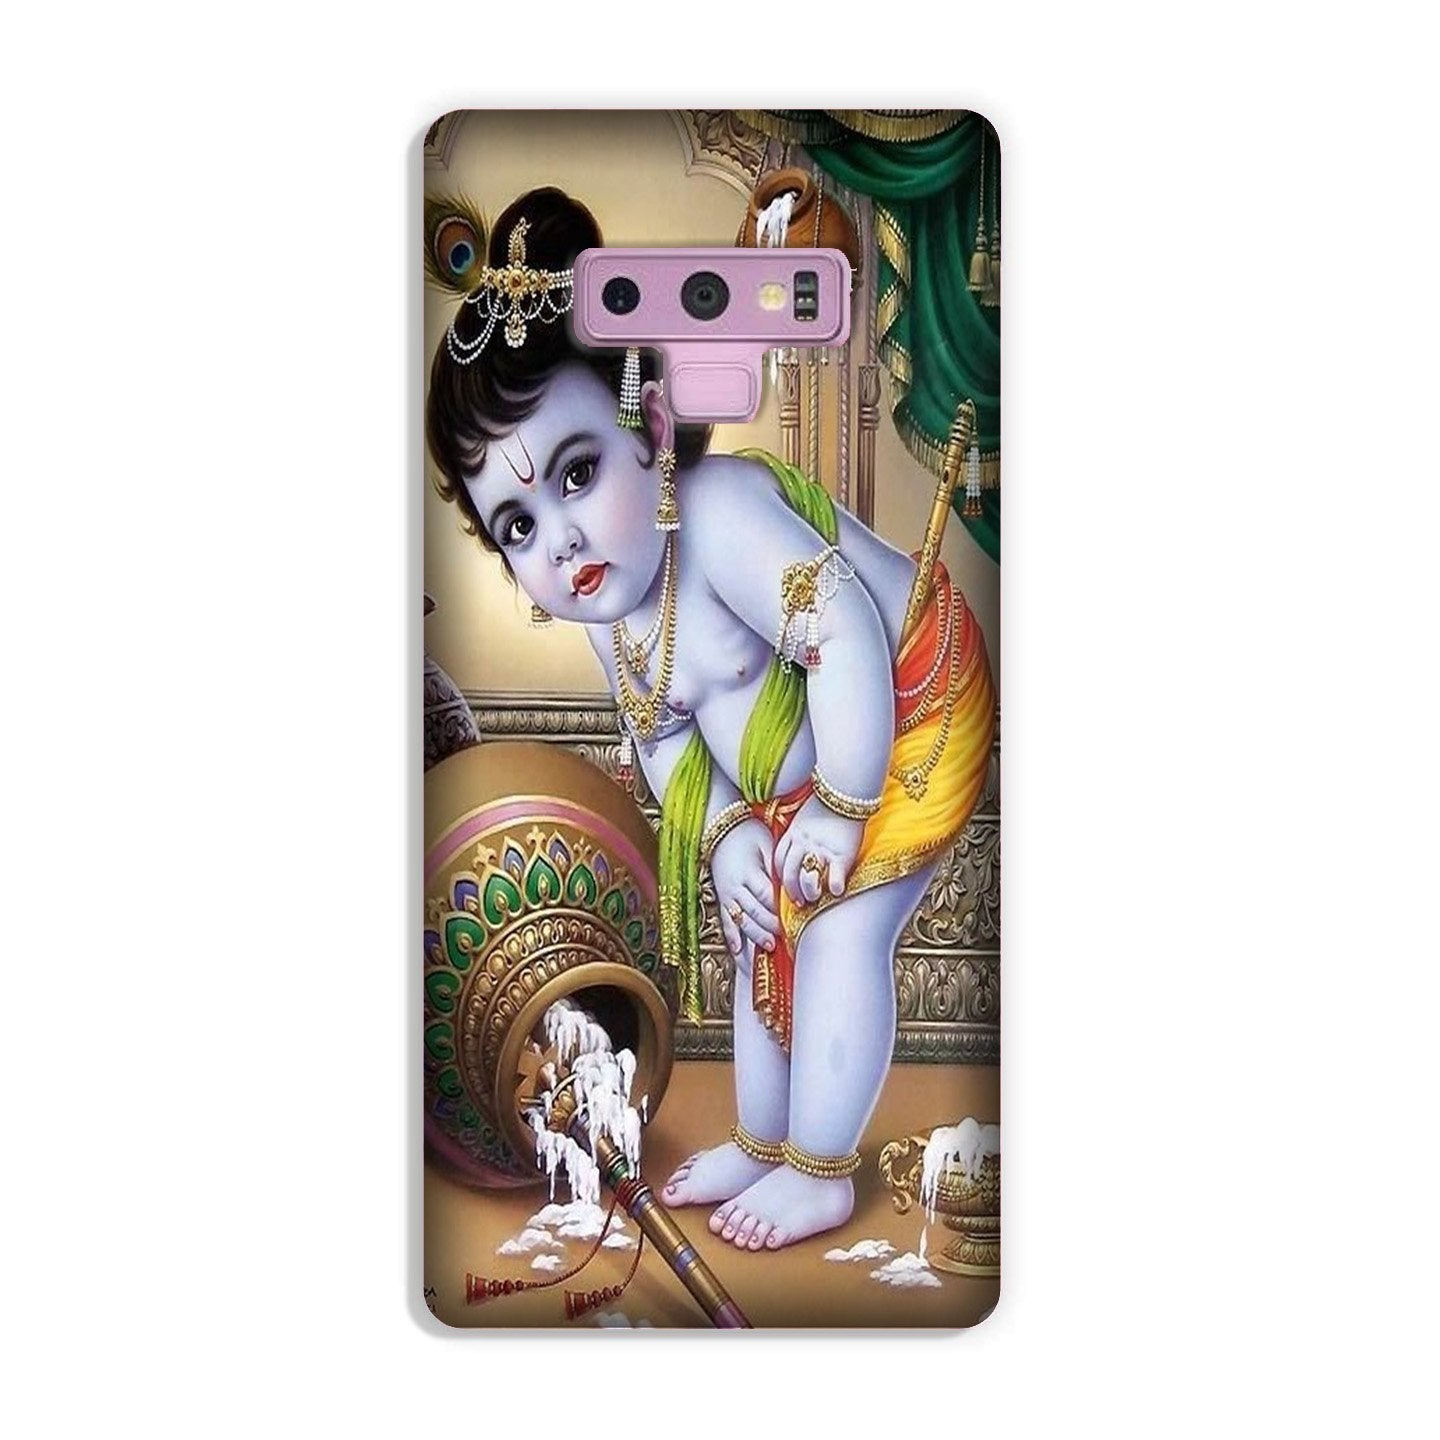 Bal Gopal2 Case for Galaxy Note 9